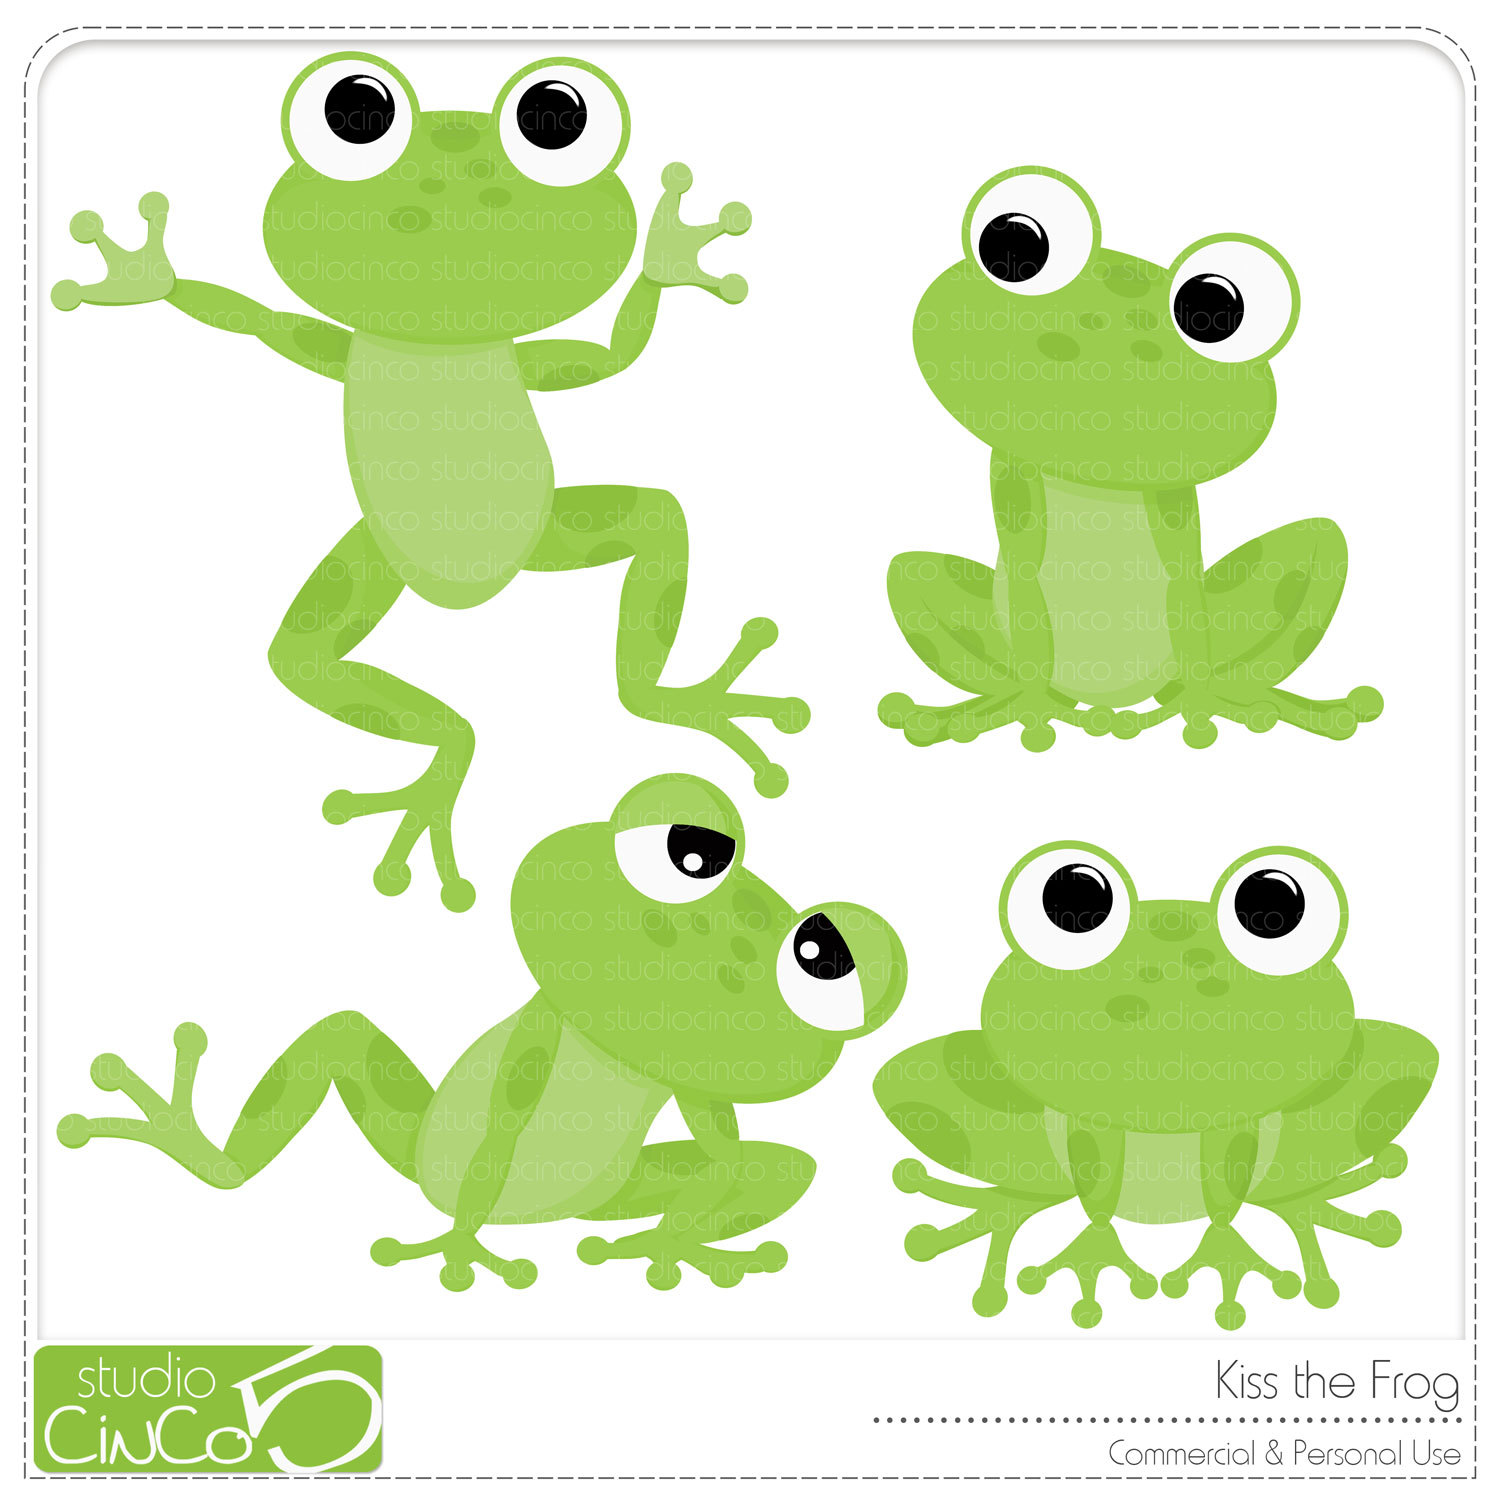 Frog Clipart Frog Clipart Frog Clipart F-Frog Clipart Frog Clipart Frog Clipart Frog Clipart Frog Clipart-10